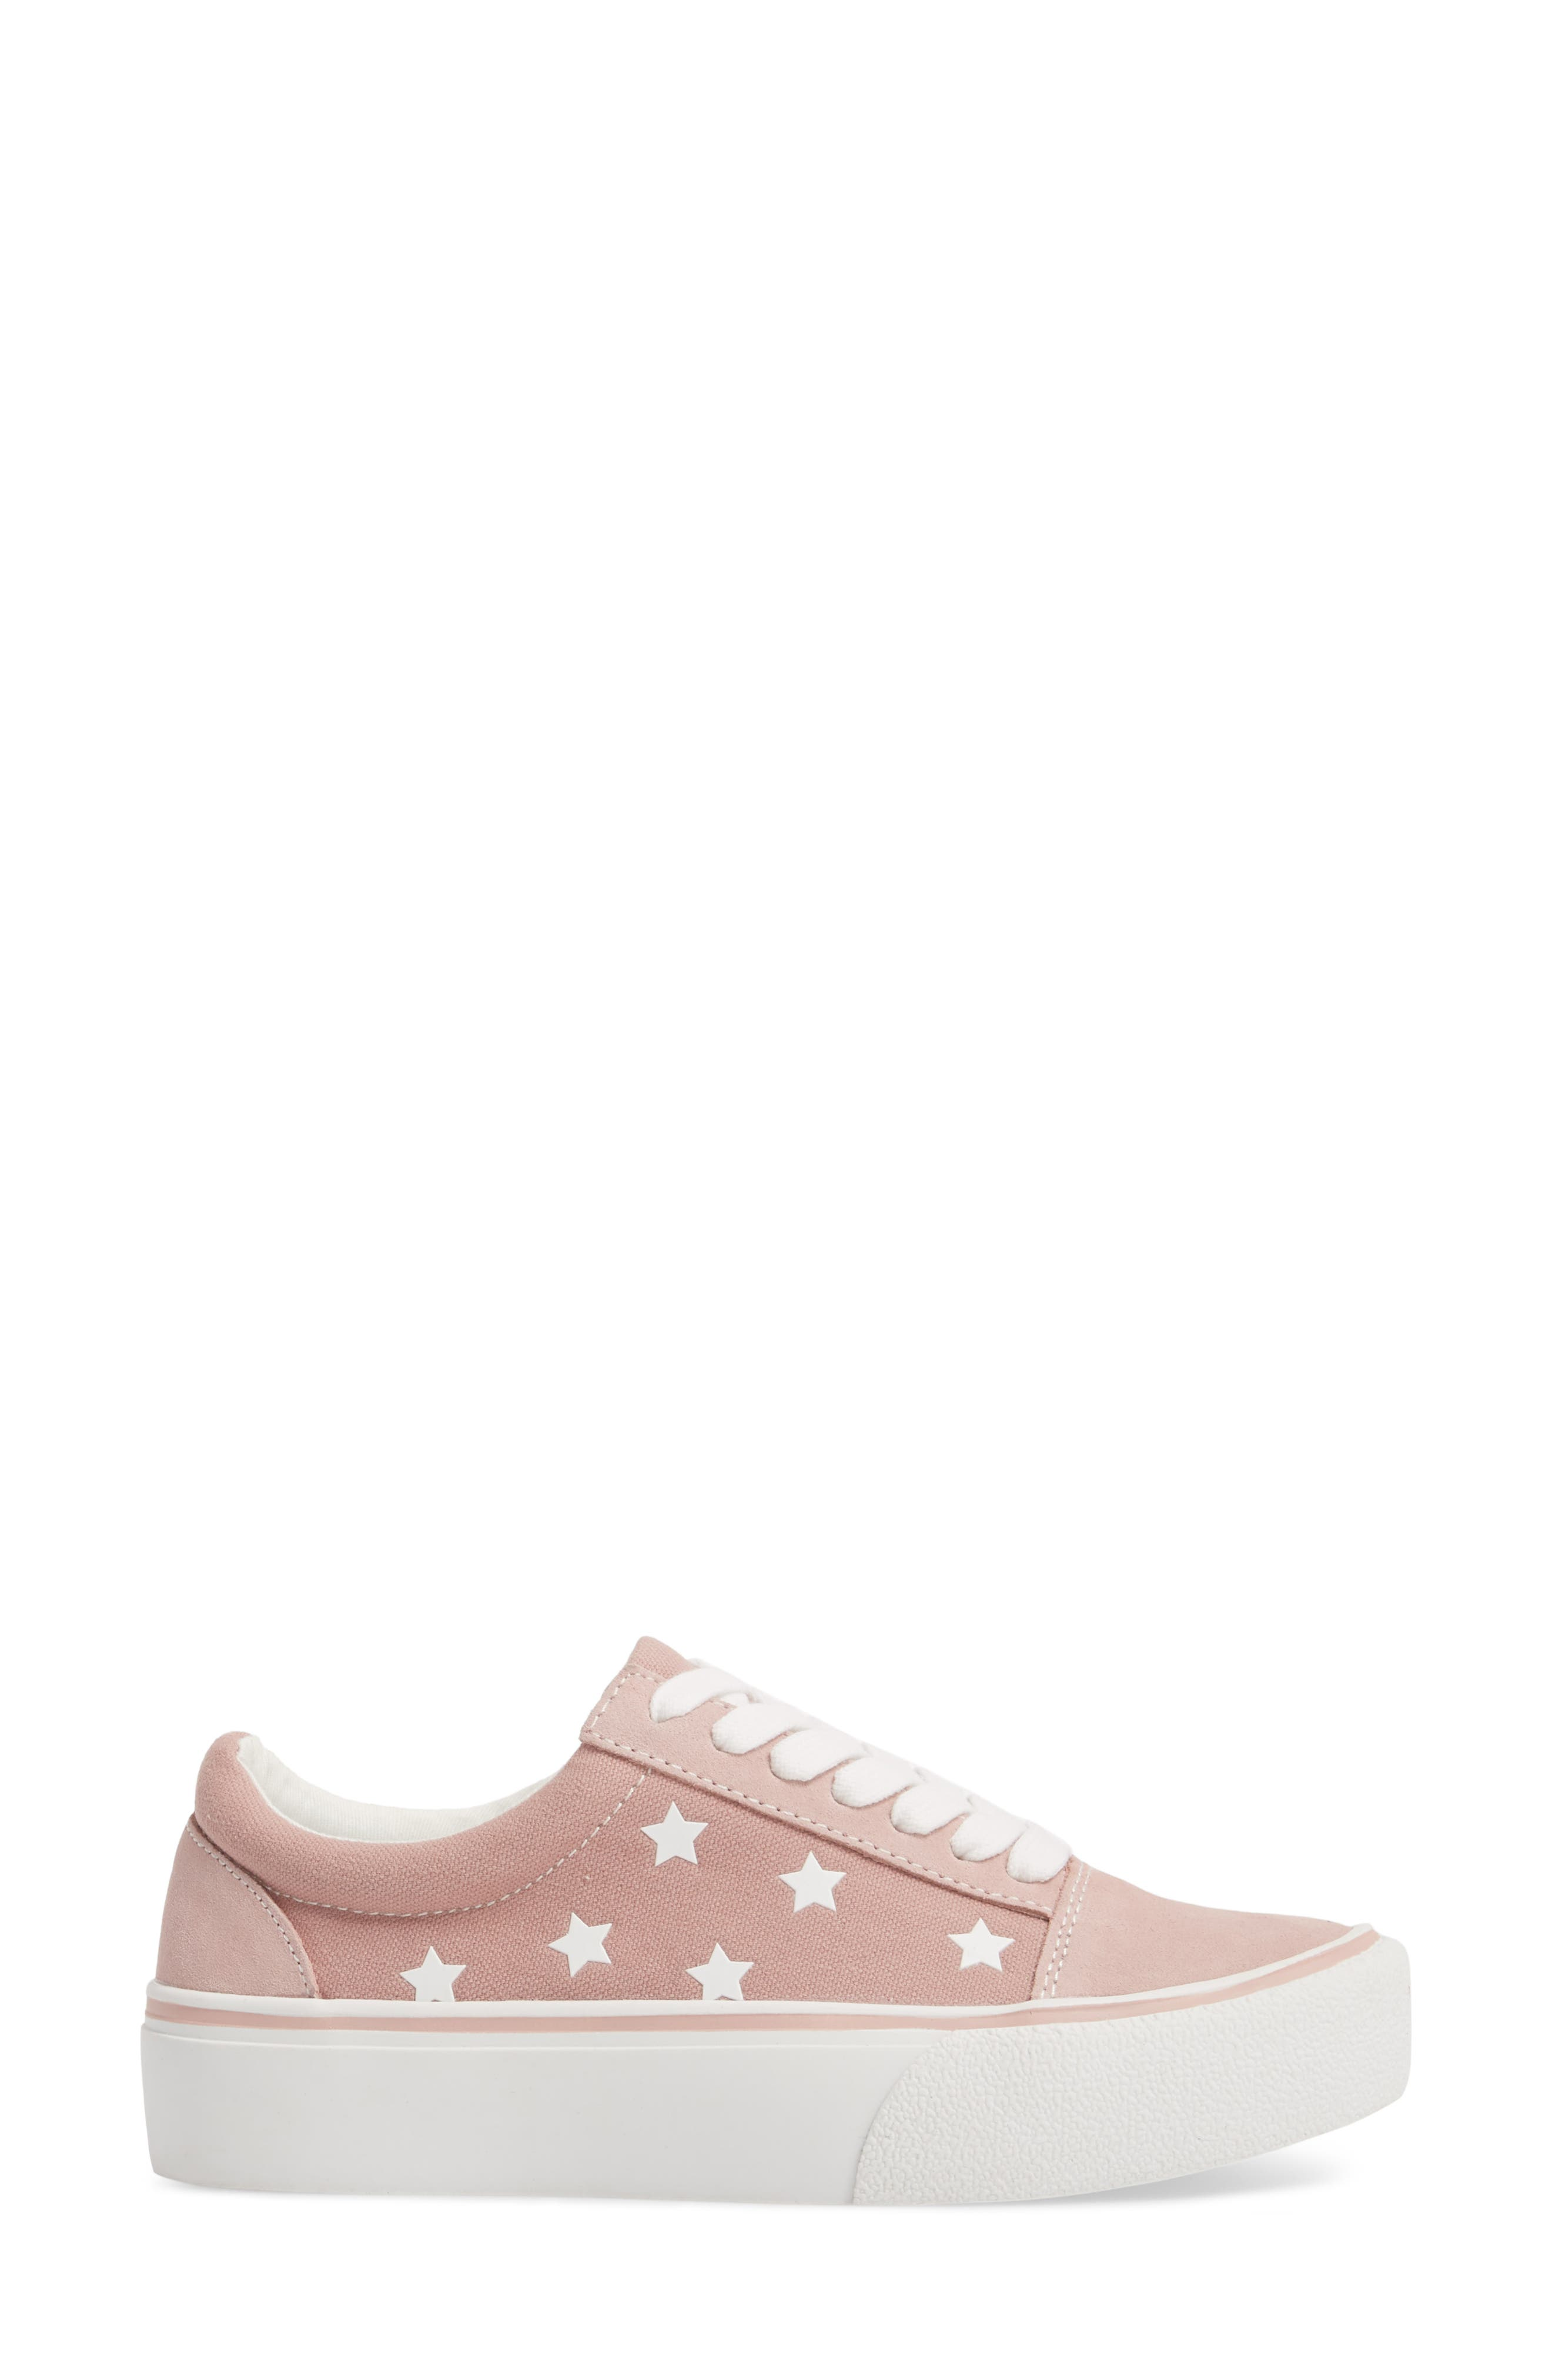 Emile Platform Sneaker,                             Alternate thumbnail 3, color,                             Pink Suede